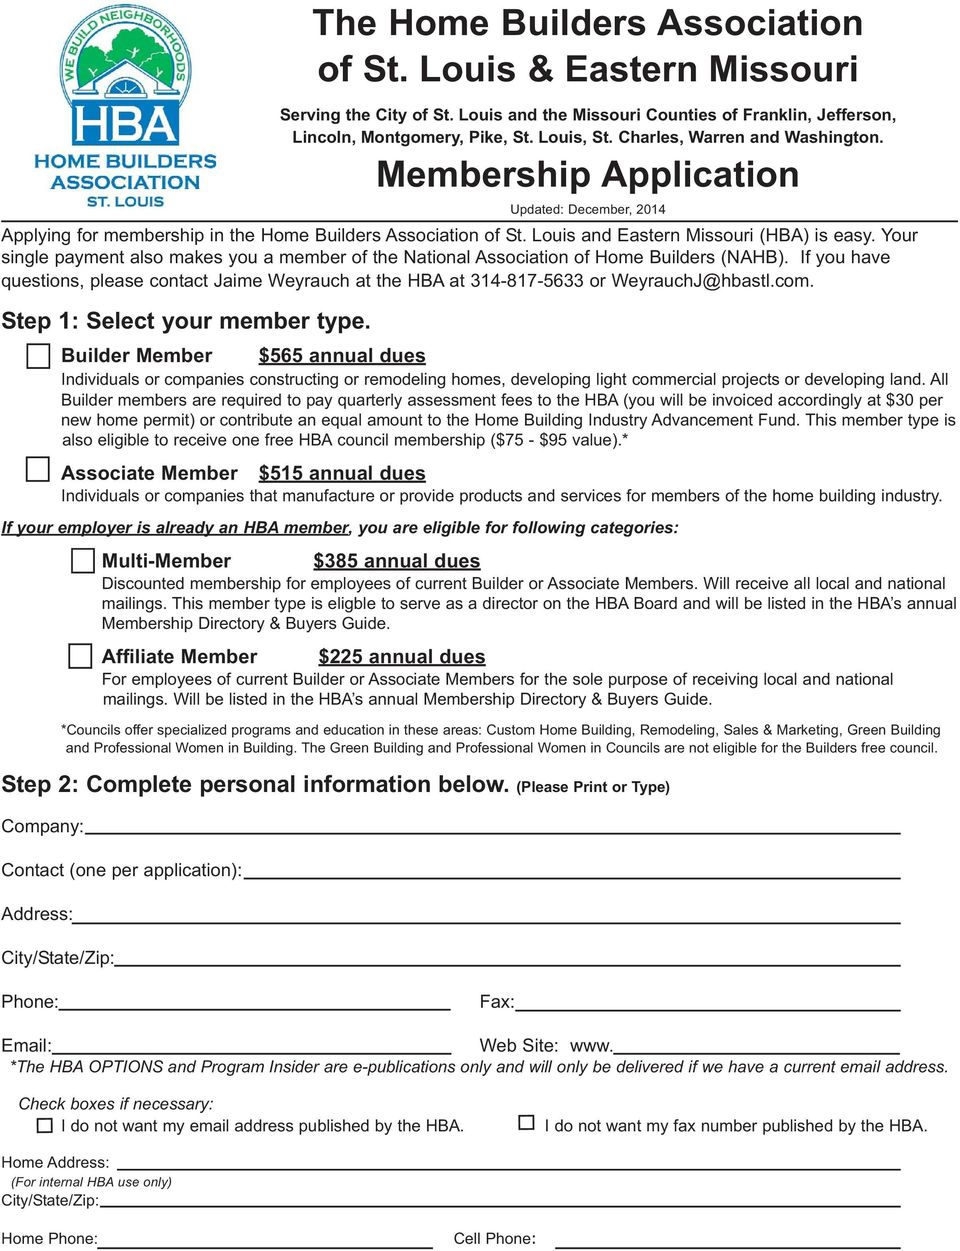 Your single payment also makes you a member of the National Association of Home Builders (NAHB). If you have questions, please contact Jaime Weyrauch at the HBA at 314-817-5633 or WeyrauchJ@hbastl.